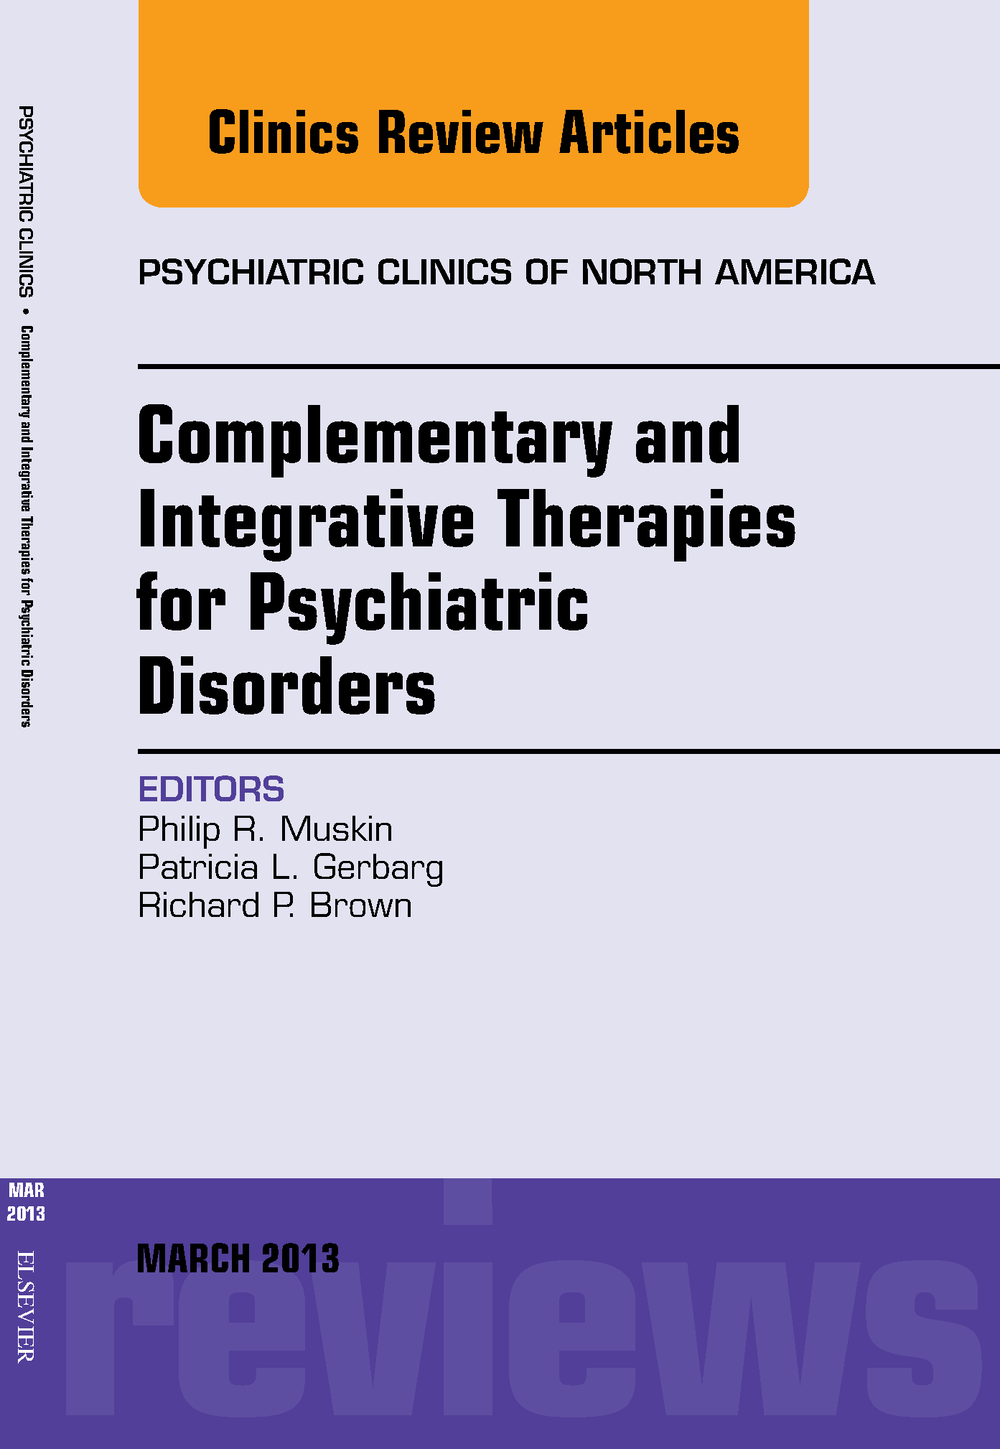 PsychClin Cover proof.png